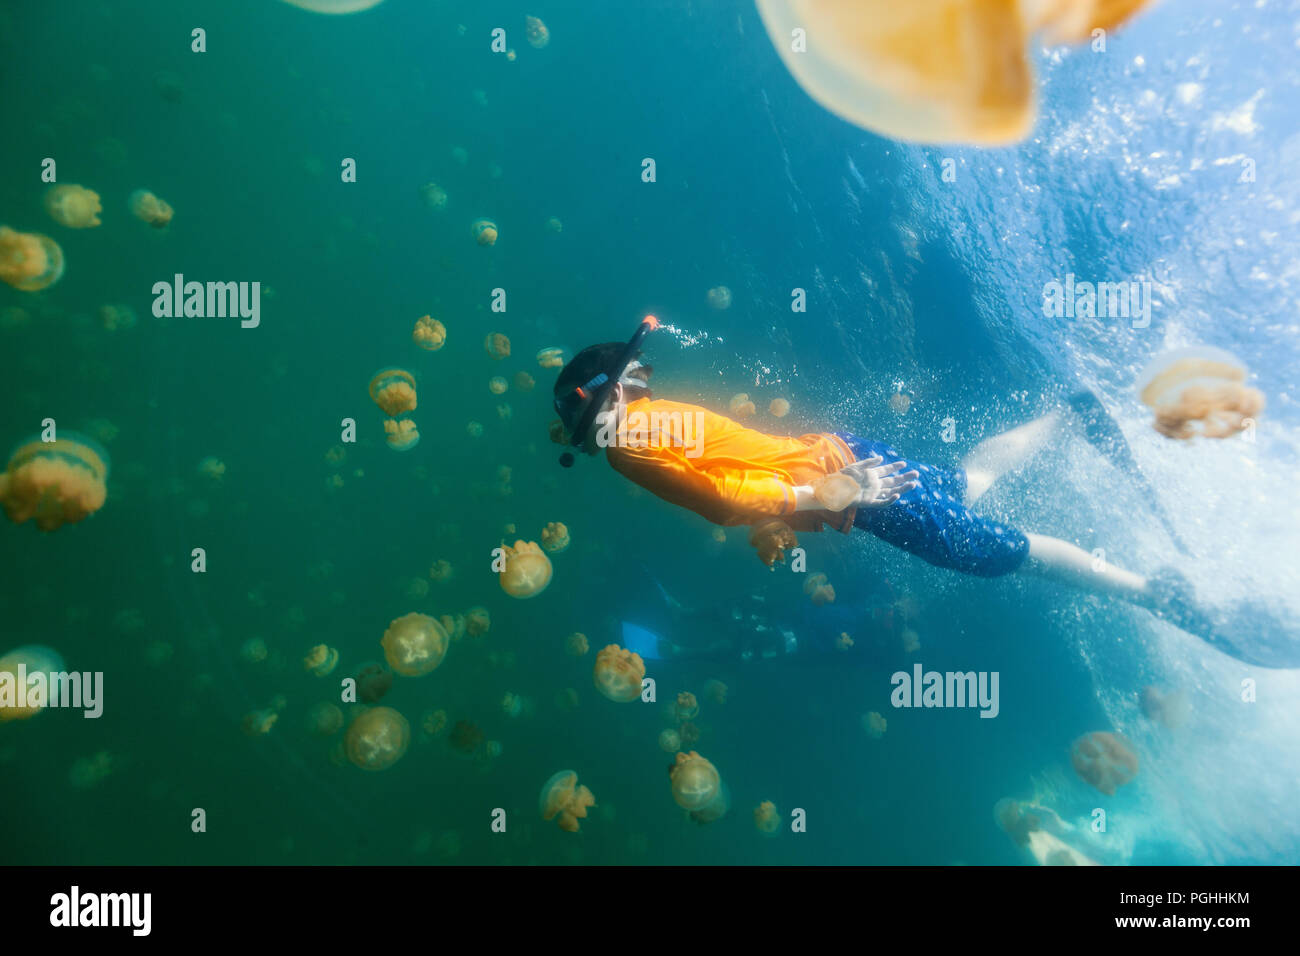 Underwater photo of child diving with endemic stingless jellyfish in lake at Palau. Stock Photo